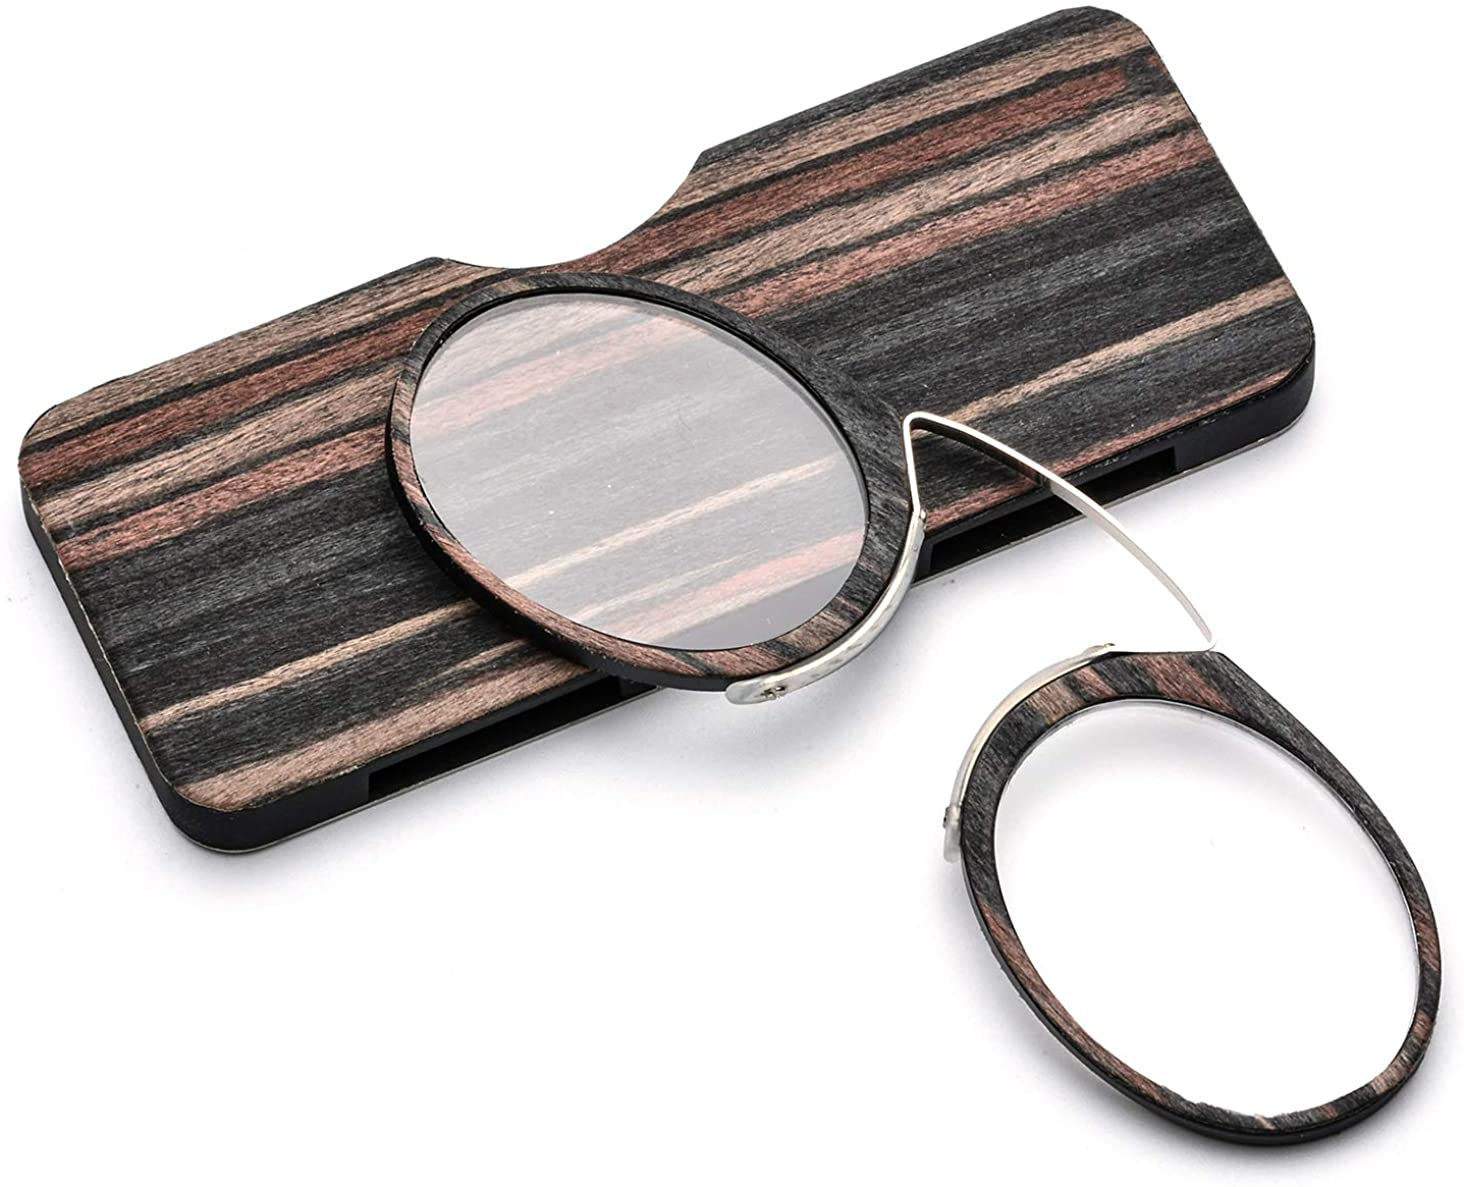 Pince Nez Style Clamp Nose Resting Pinching Reading Glasses with No Temple Arms Readers for Men and Women FJB02